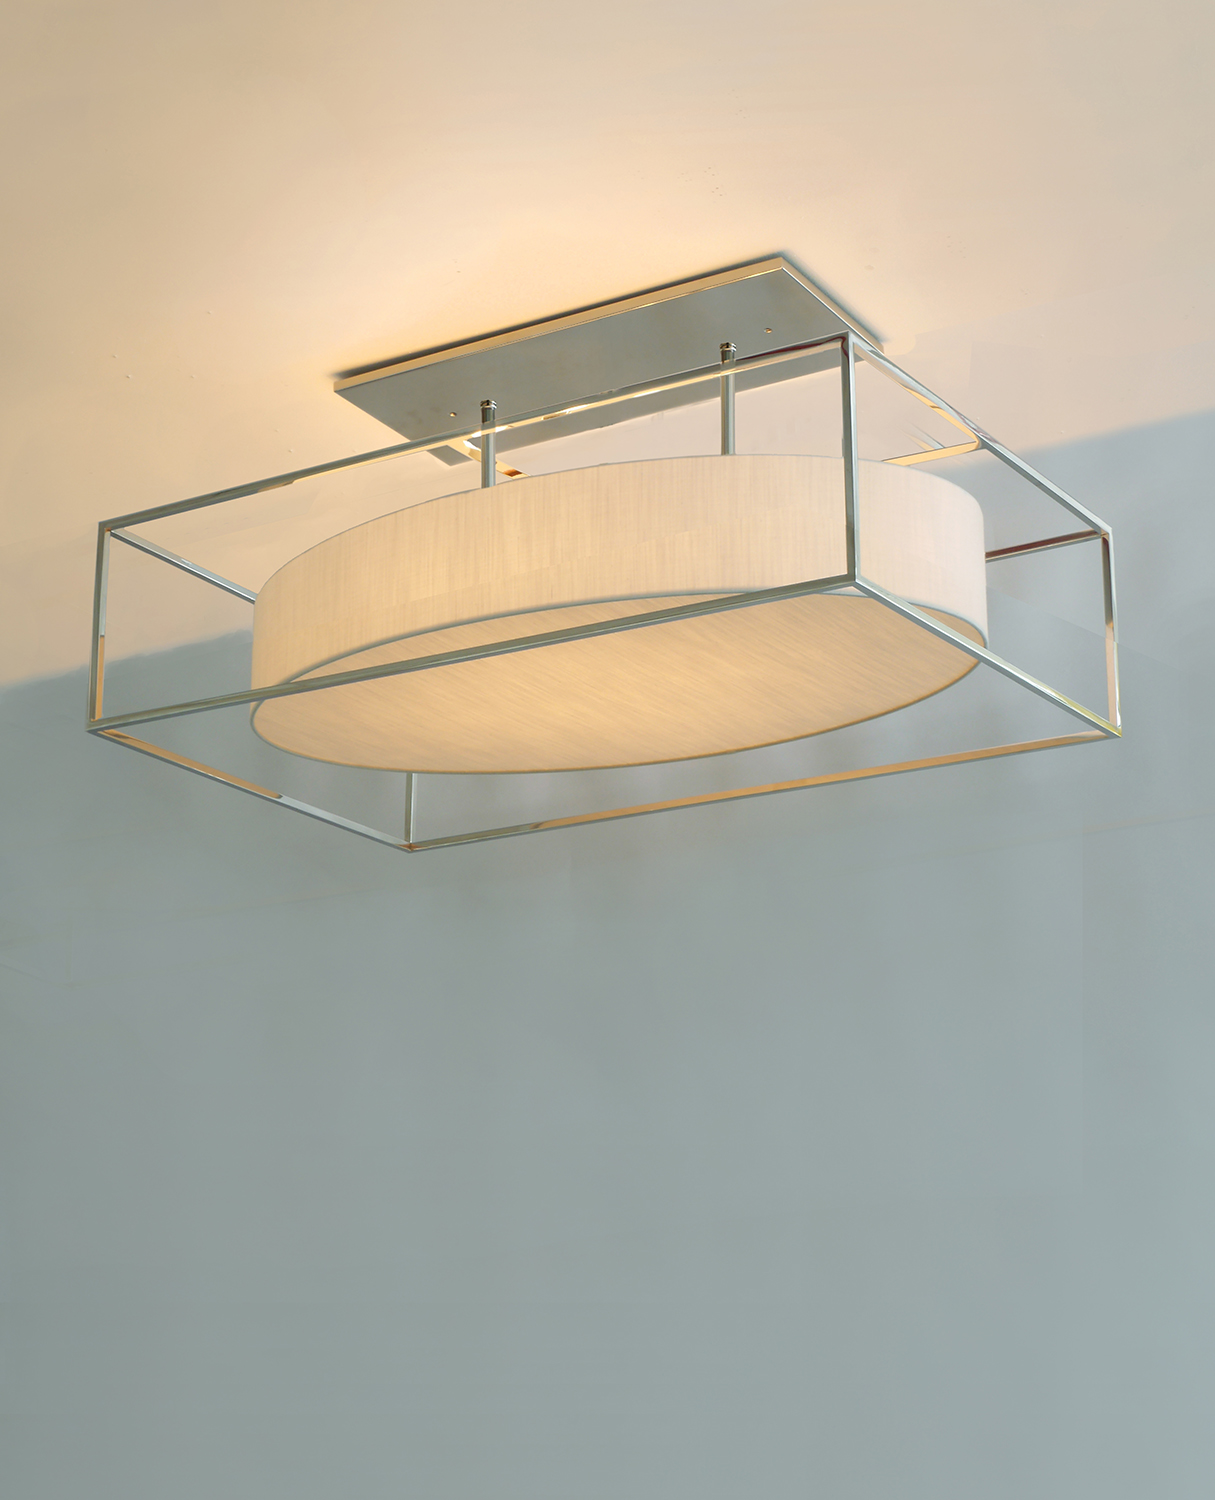 Boxed_C-208_Boxed Oval Ceiling Fixture with Two Stems_Polished Nickel_Ecru.jpg